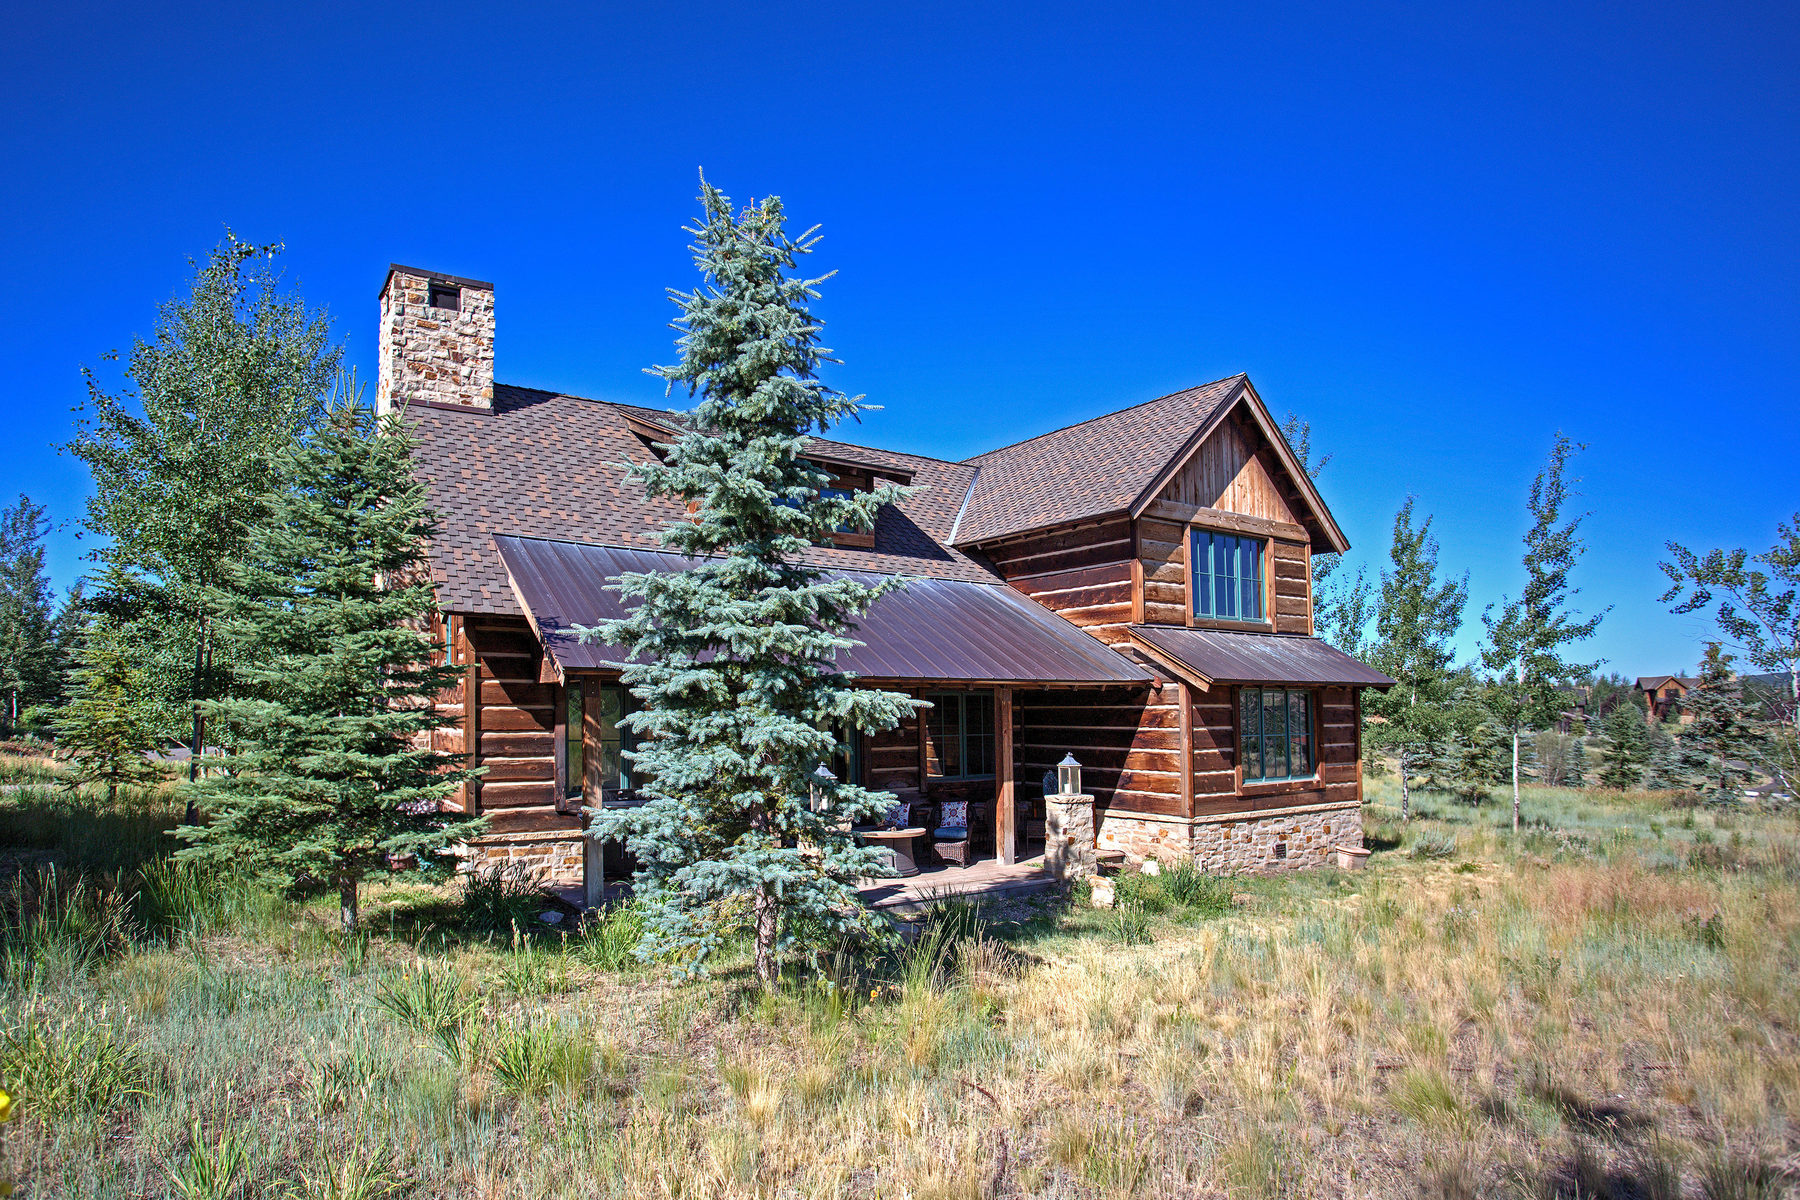 Moradia para Venda às Exclusive Setting in the Trapper Cabin Neighborhood 7933 Chuck Wagon Ct Park City, Utah, 84098 Estados Unidos